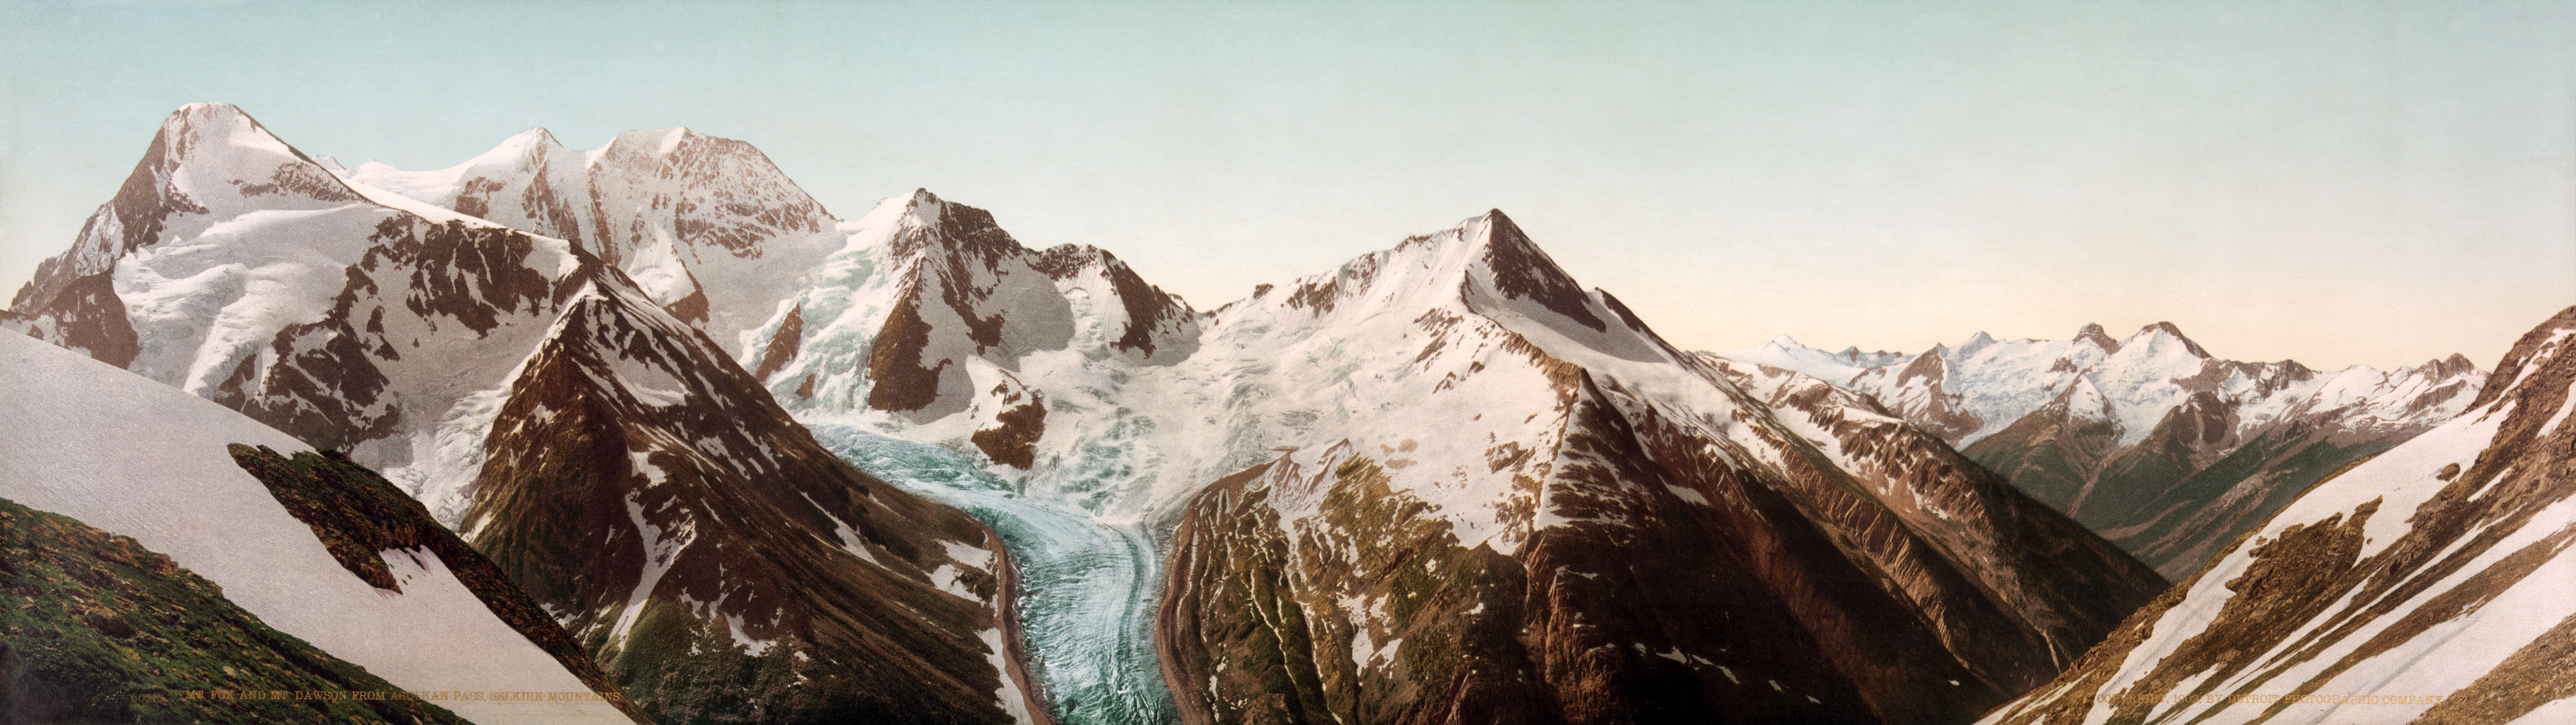 TEF: MOUNTAINS Flickr_-_%E2%80%A6trialsanderrors_-_Mt._Fox_and_Mt._Dawson_with_Dawson%27s_Glacier_from_Asulkan_Pass%2C_Selkirk_Mountains%2C_British_Columbia%2C_1902